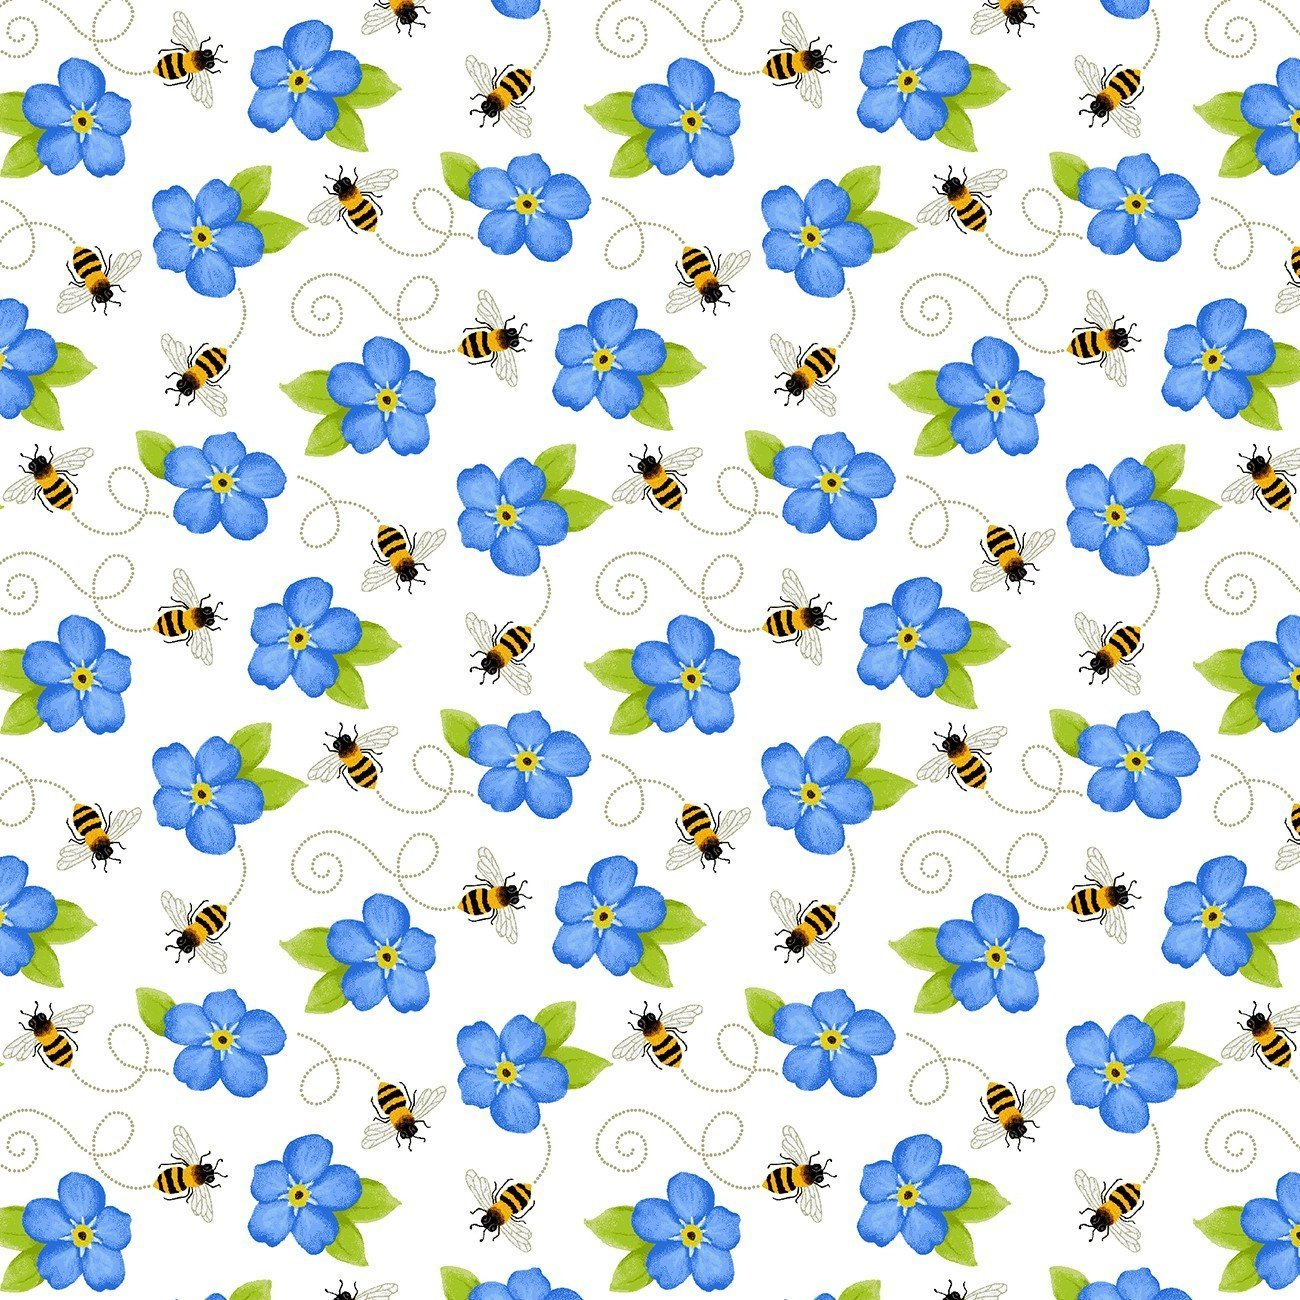 Tossed Bees and Blue Flowers